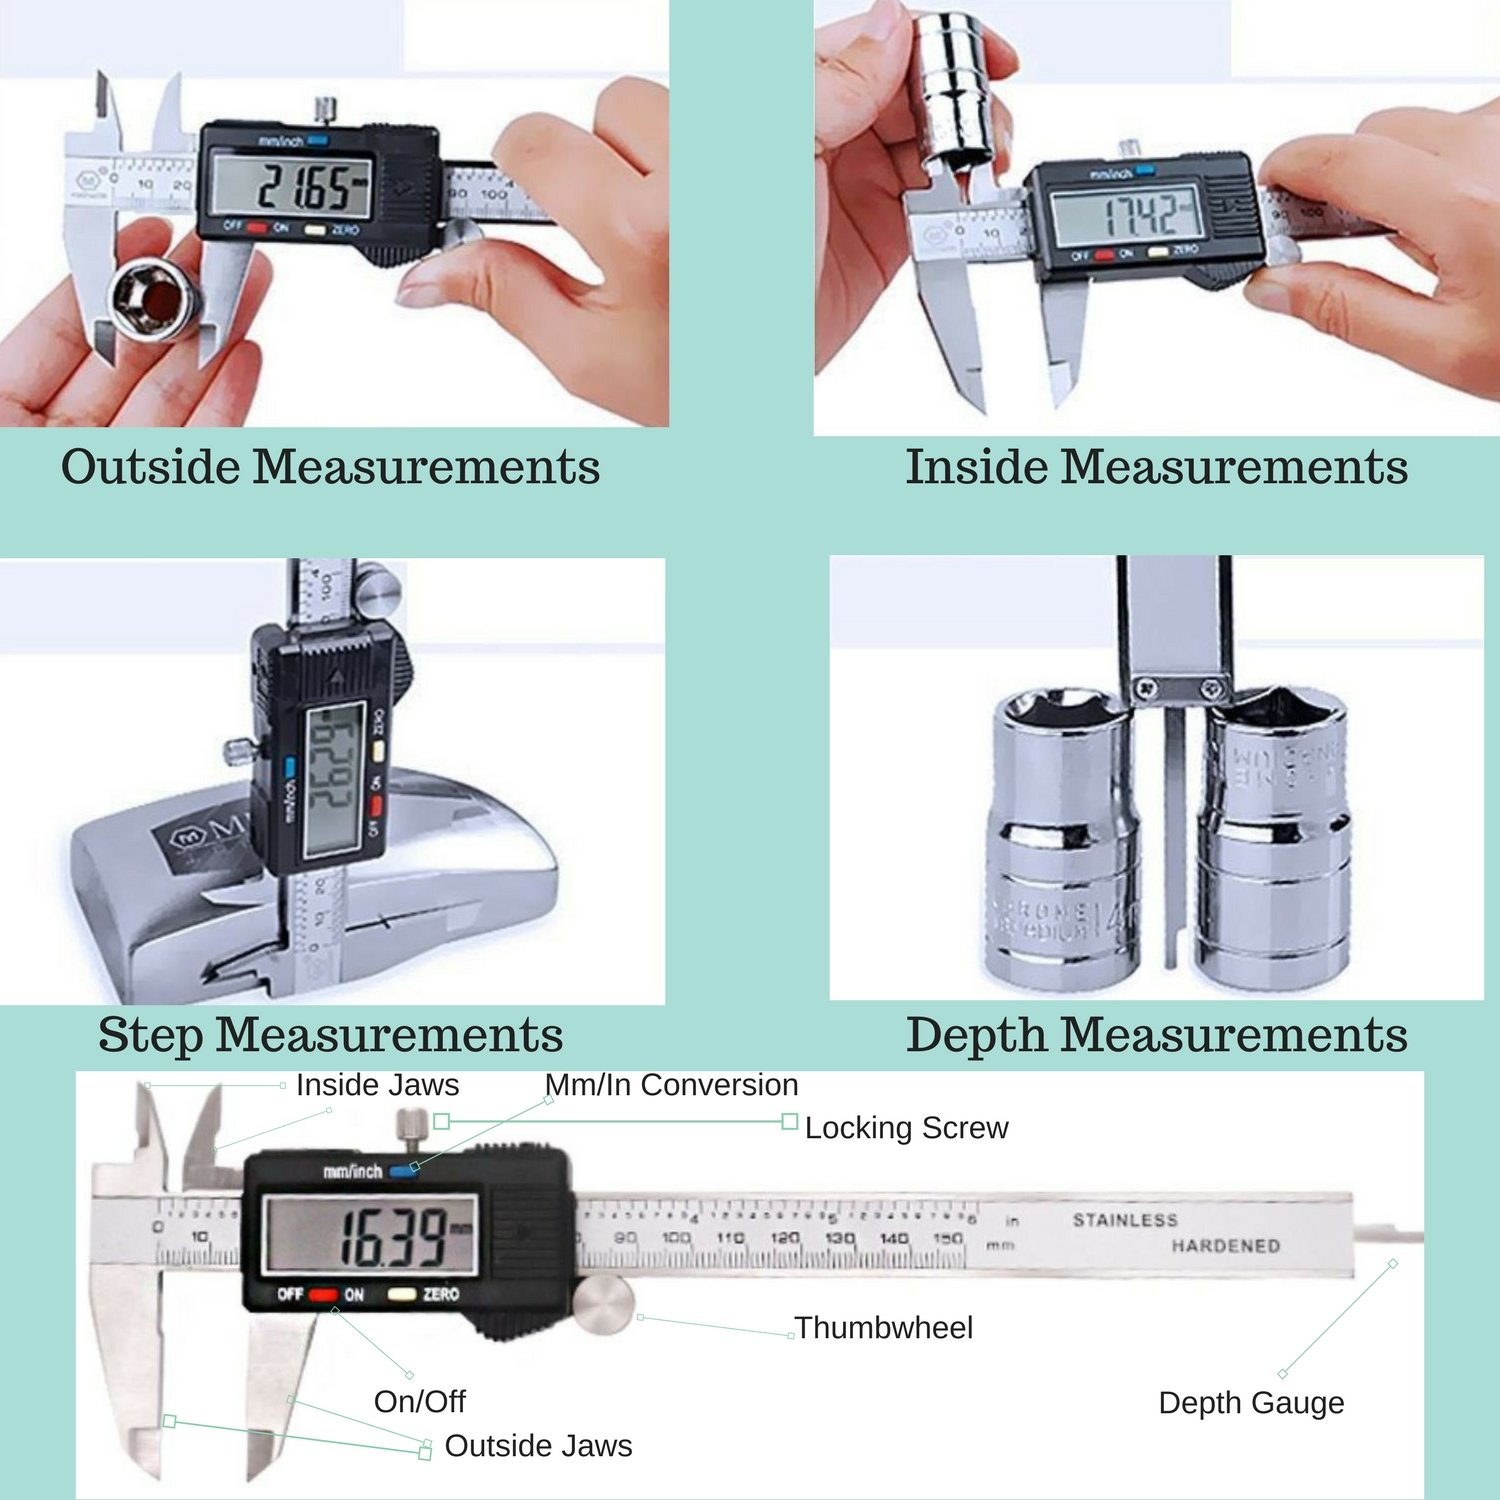 Electronic Digital Caliper 0-6 inch/150mm Vernier Extra Large LCD Screen, Stainless Steel Body, Conversion Millimeters Inches Precision Measurement Tool Depth Inside Step Outside Gauge Auto Off, Case by CaliFra (Image #3)